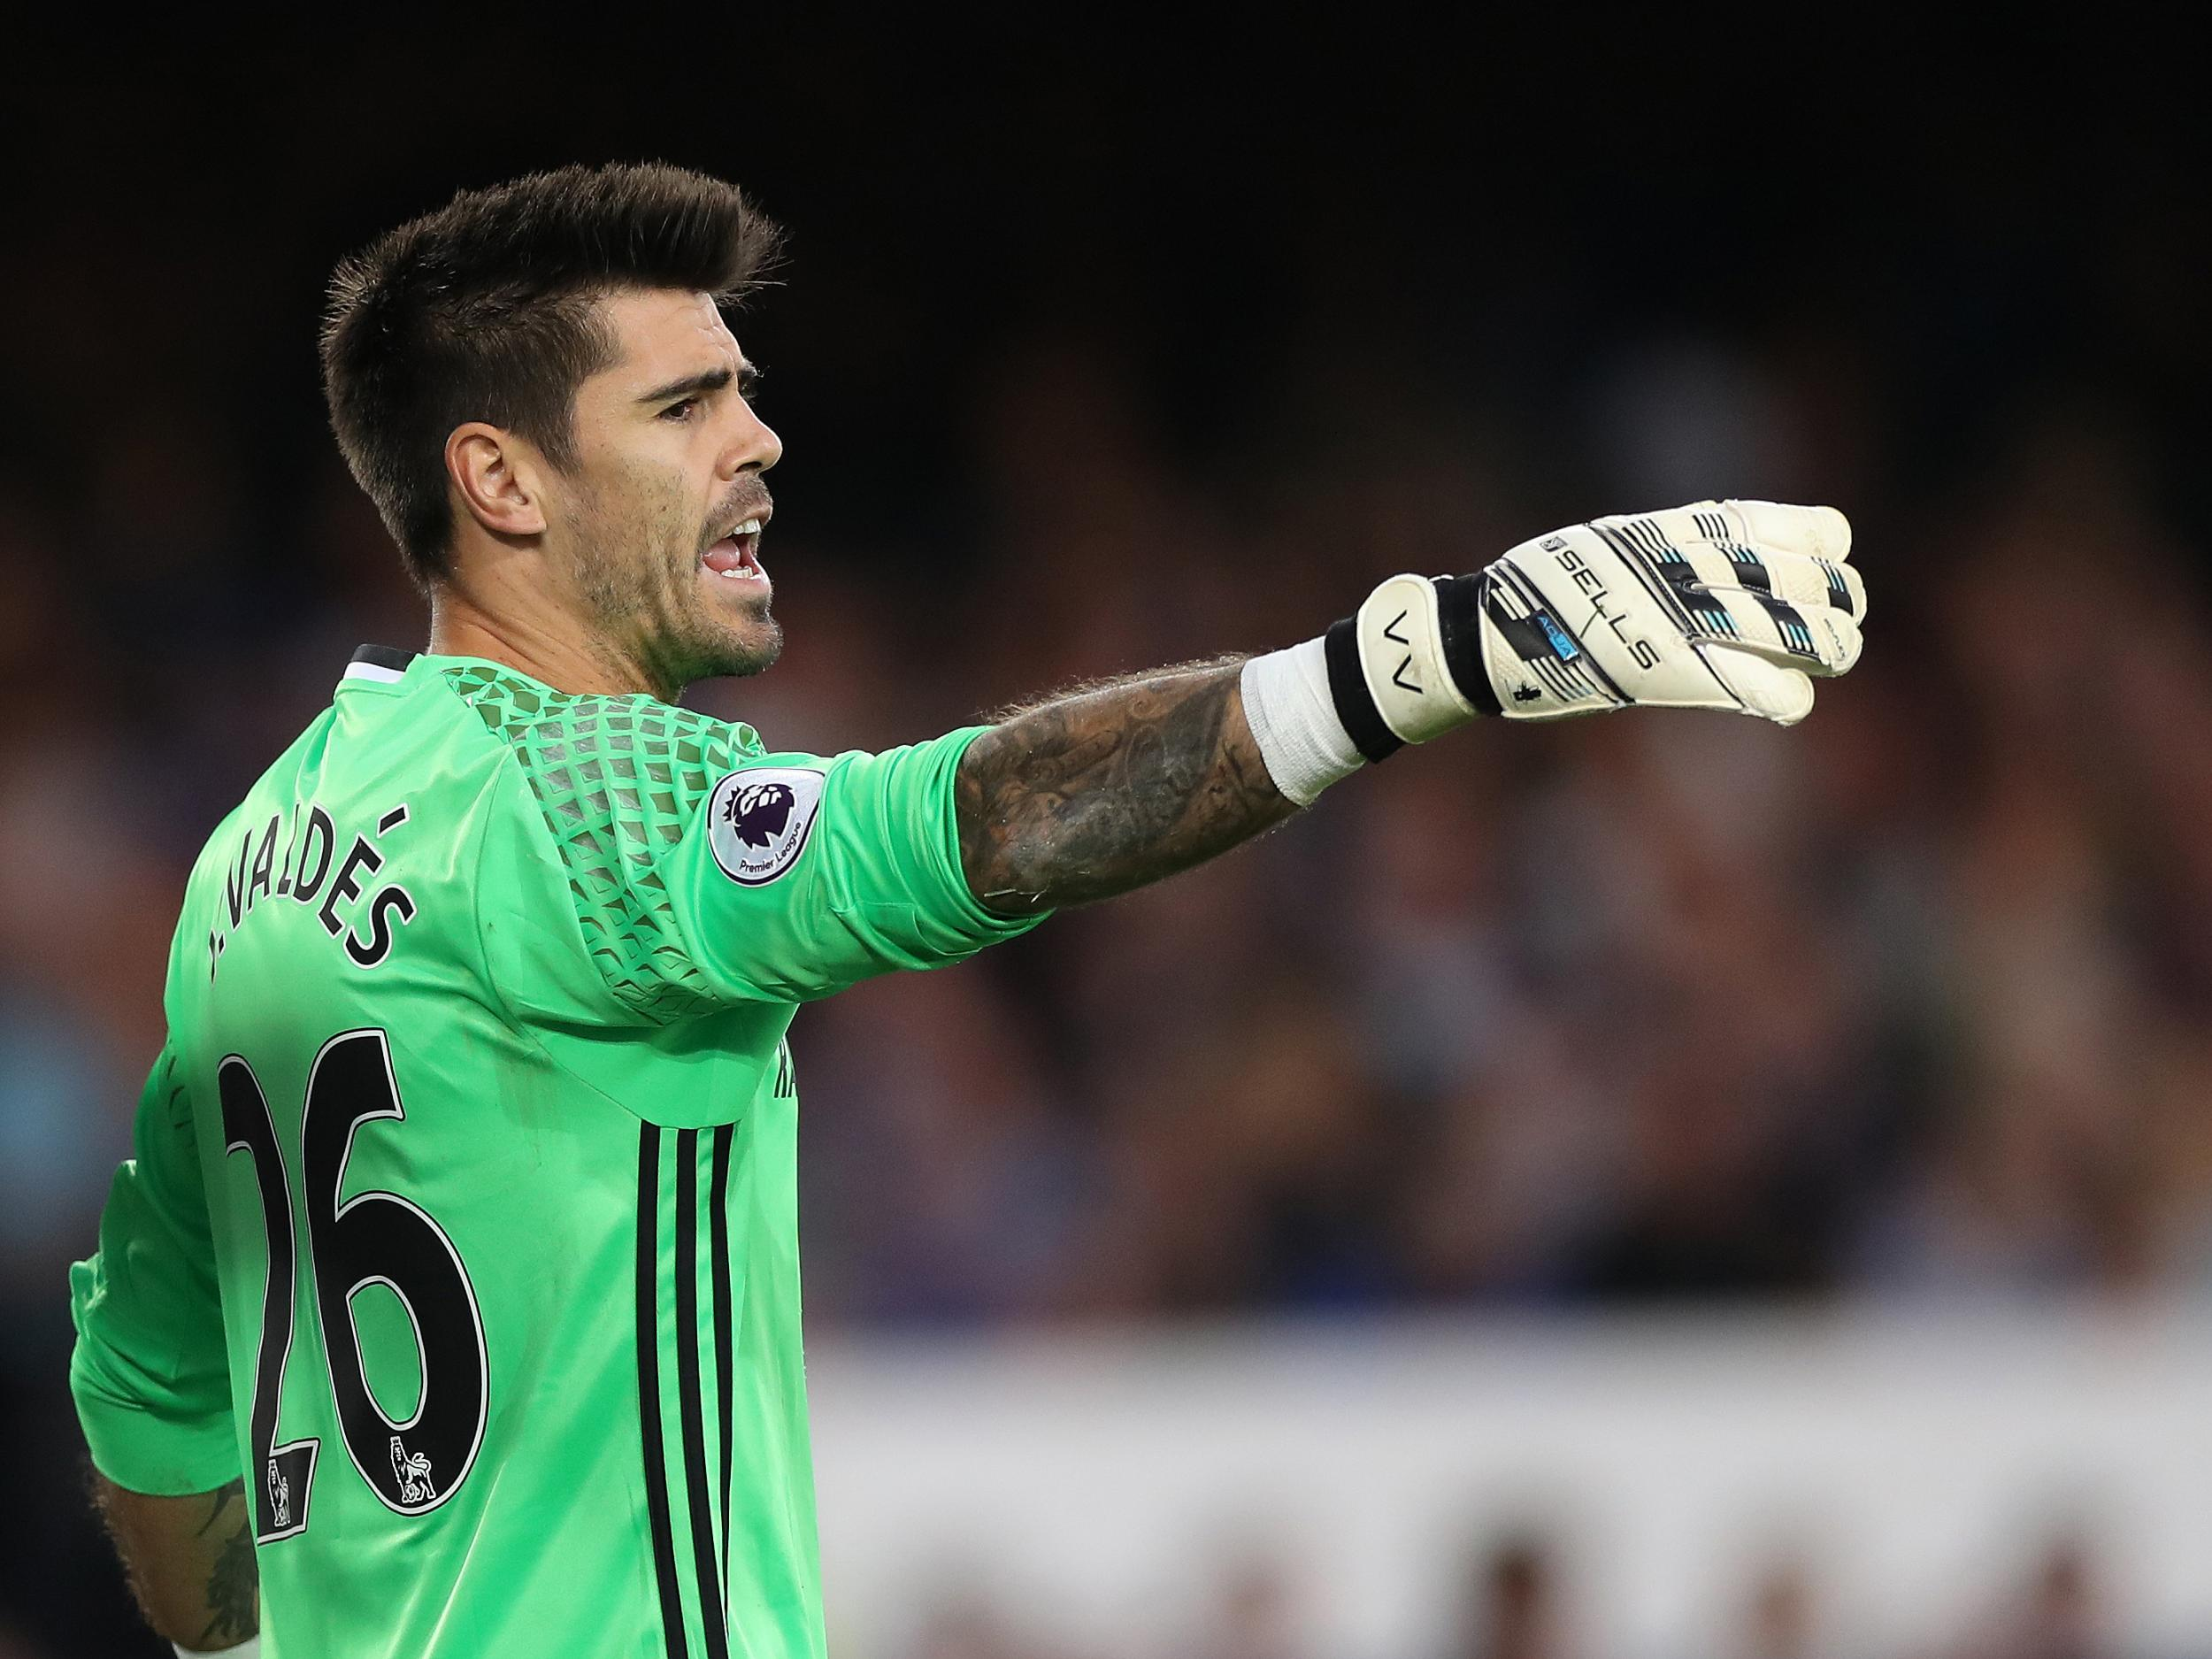 Middlesbrough goalkeeper Victor Valdes launches dating app